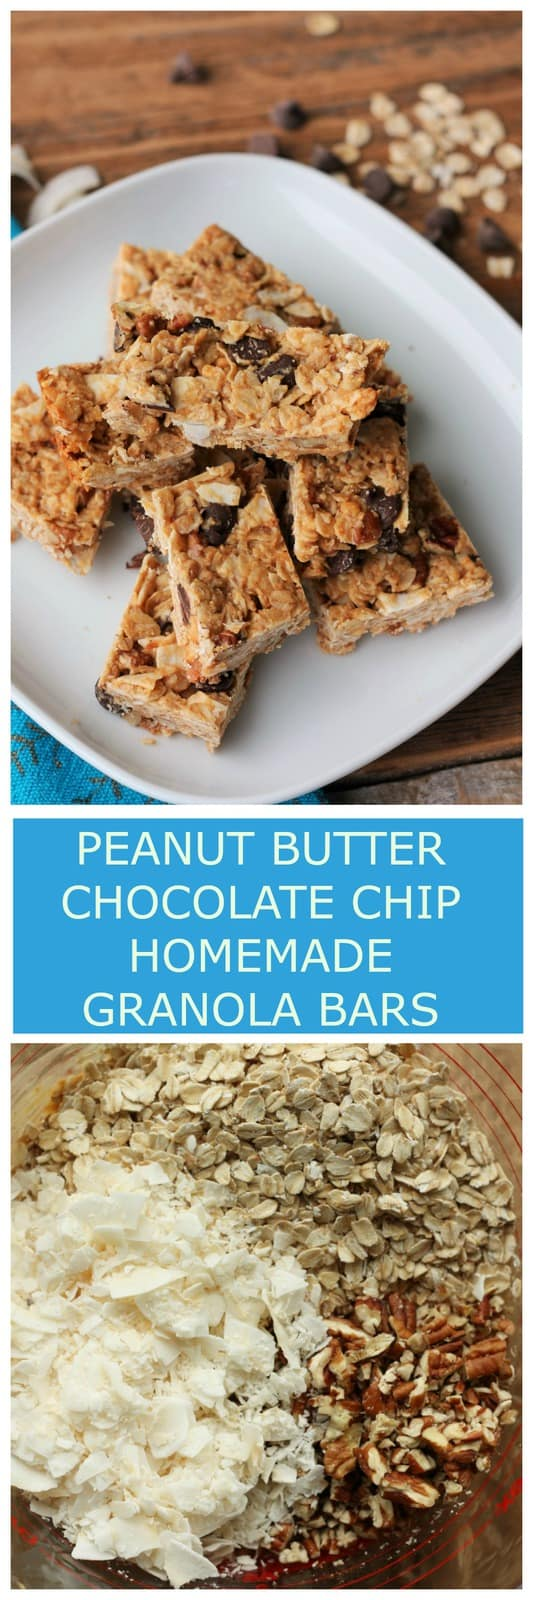 Skip the overpriced packaged granola bars at the store and make your own! Peanut Butter Chocolate Chip Homemade Granola Bars are a delicious and easy real food treat made in your own kitchen.